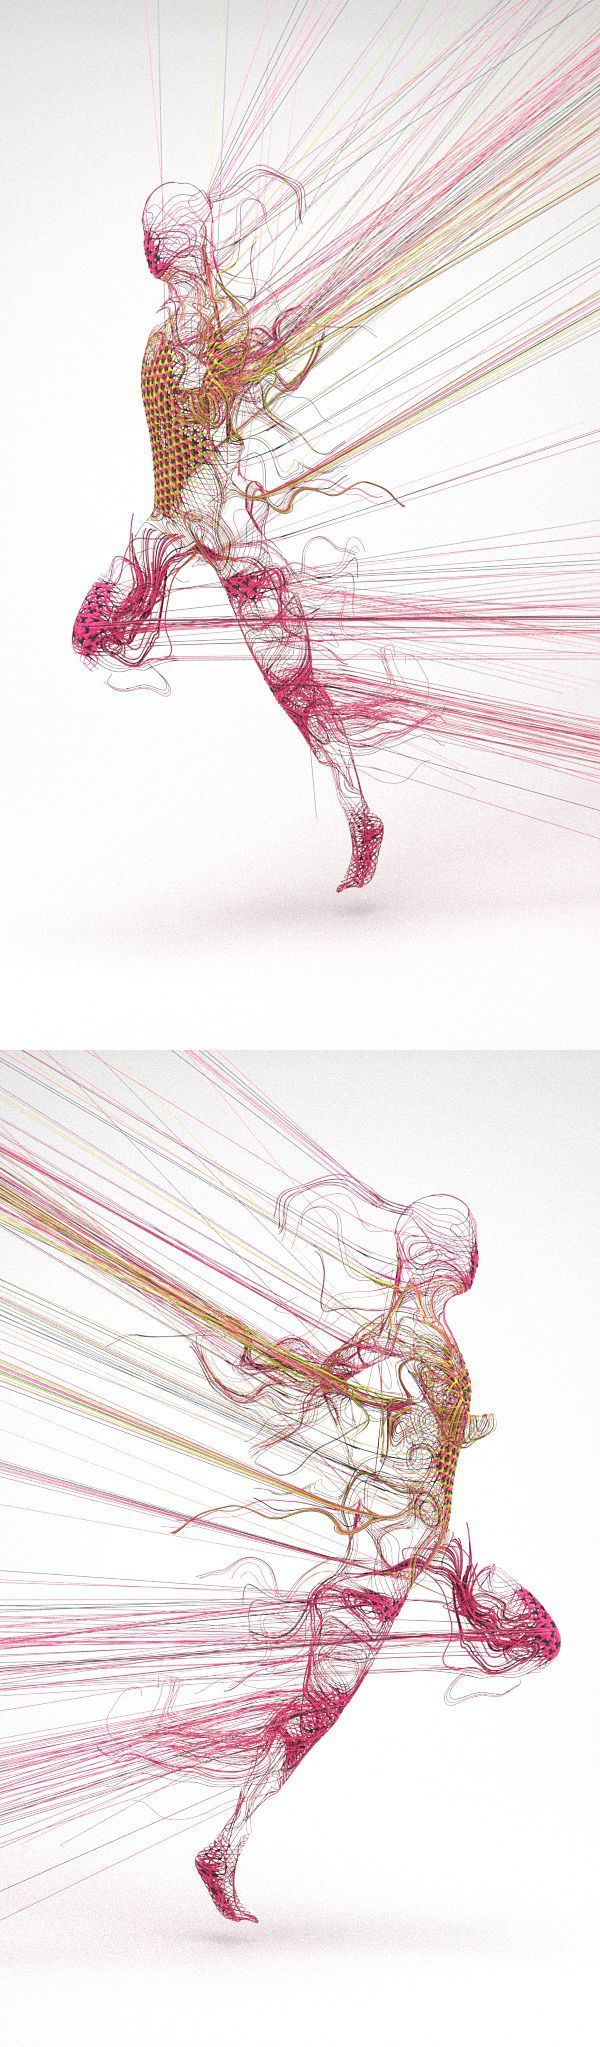 Nike Flyknit 2012 by deskriptiv _, via Behance